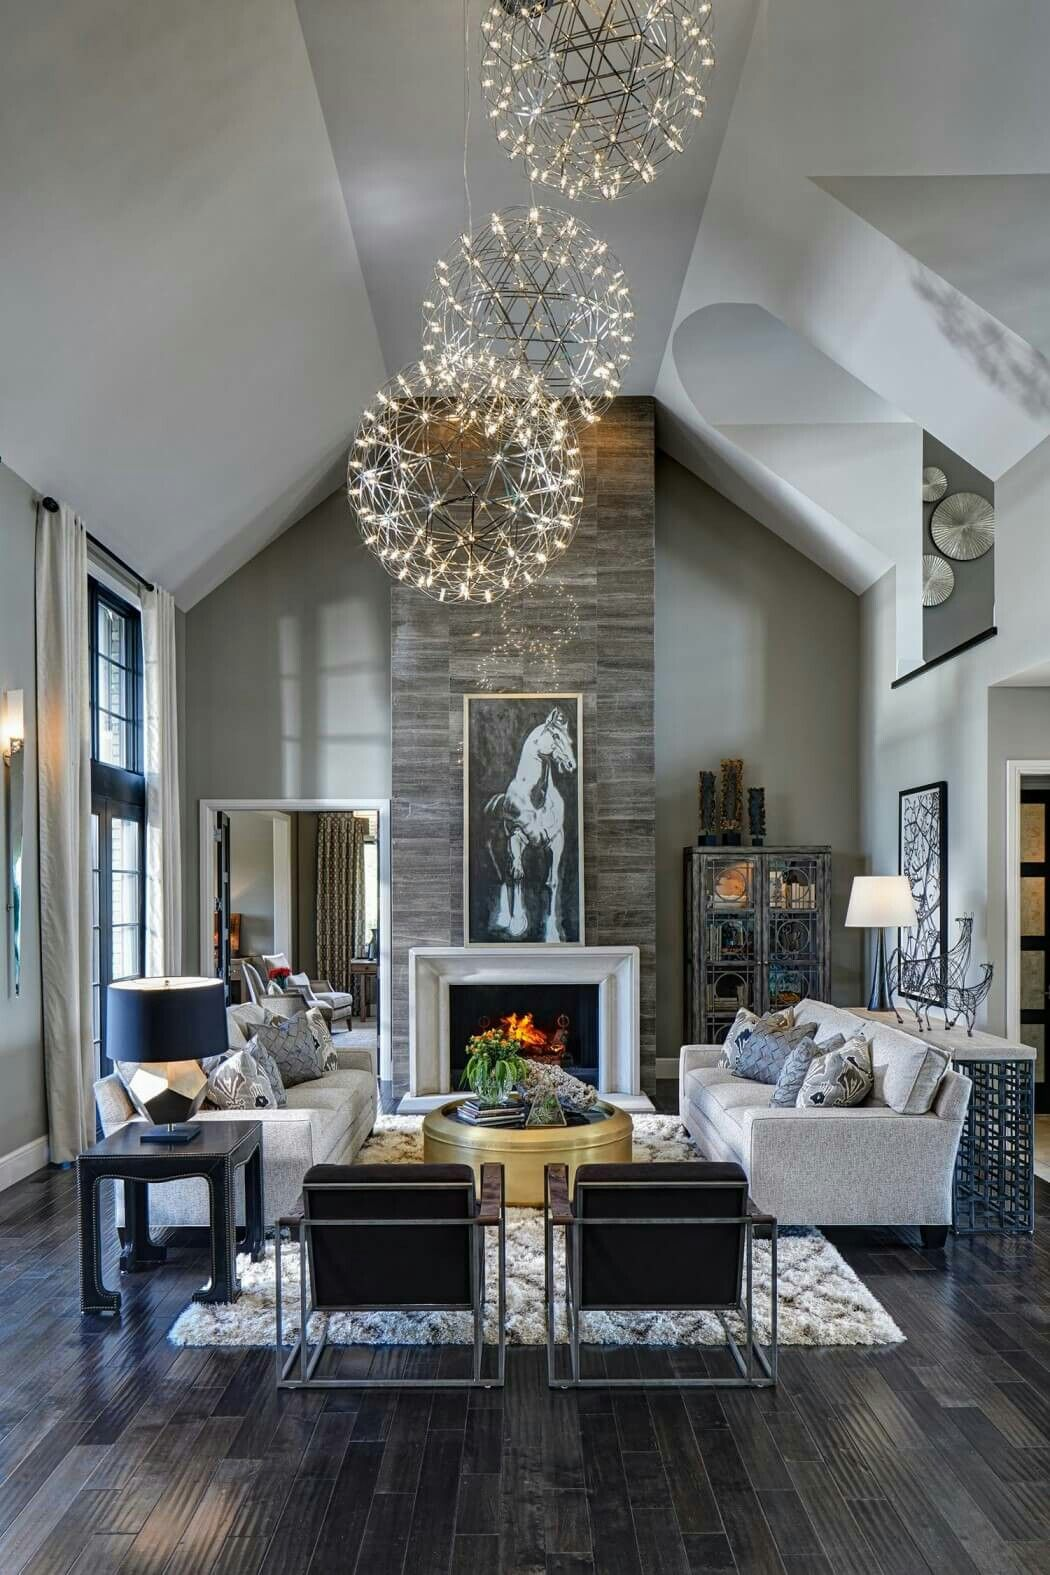 Explore Modern Rustic Decor Two Story Fireplace